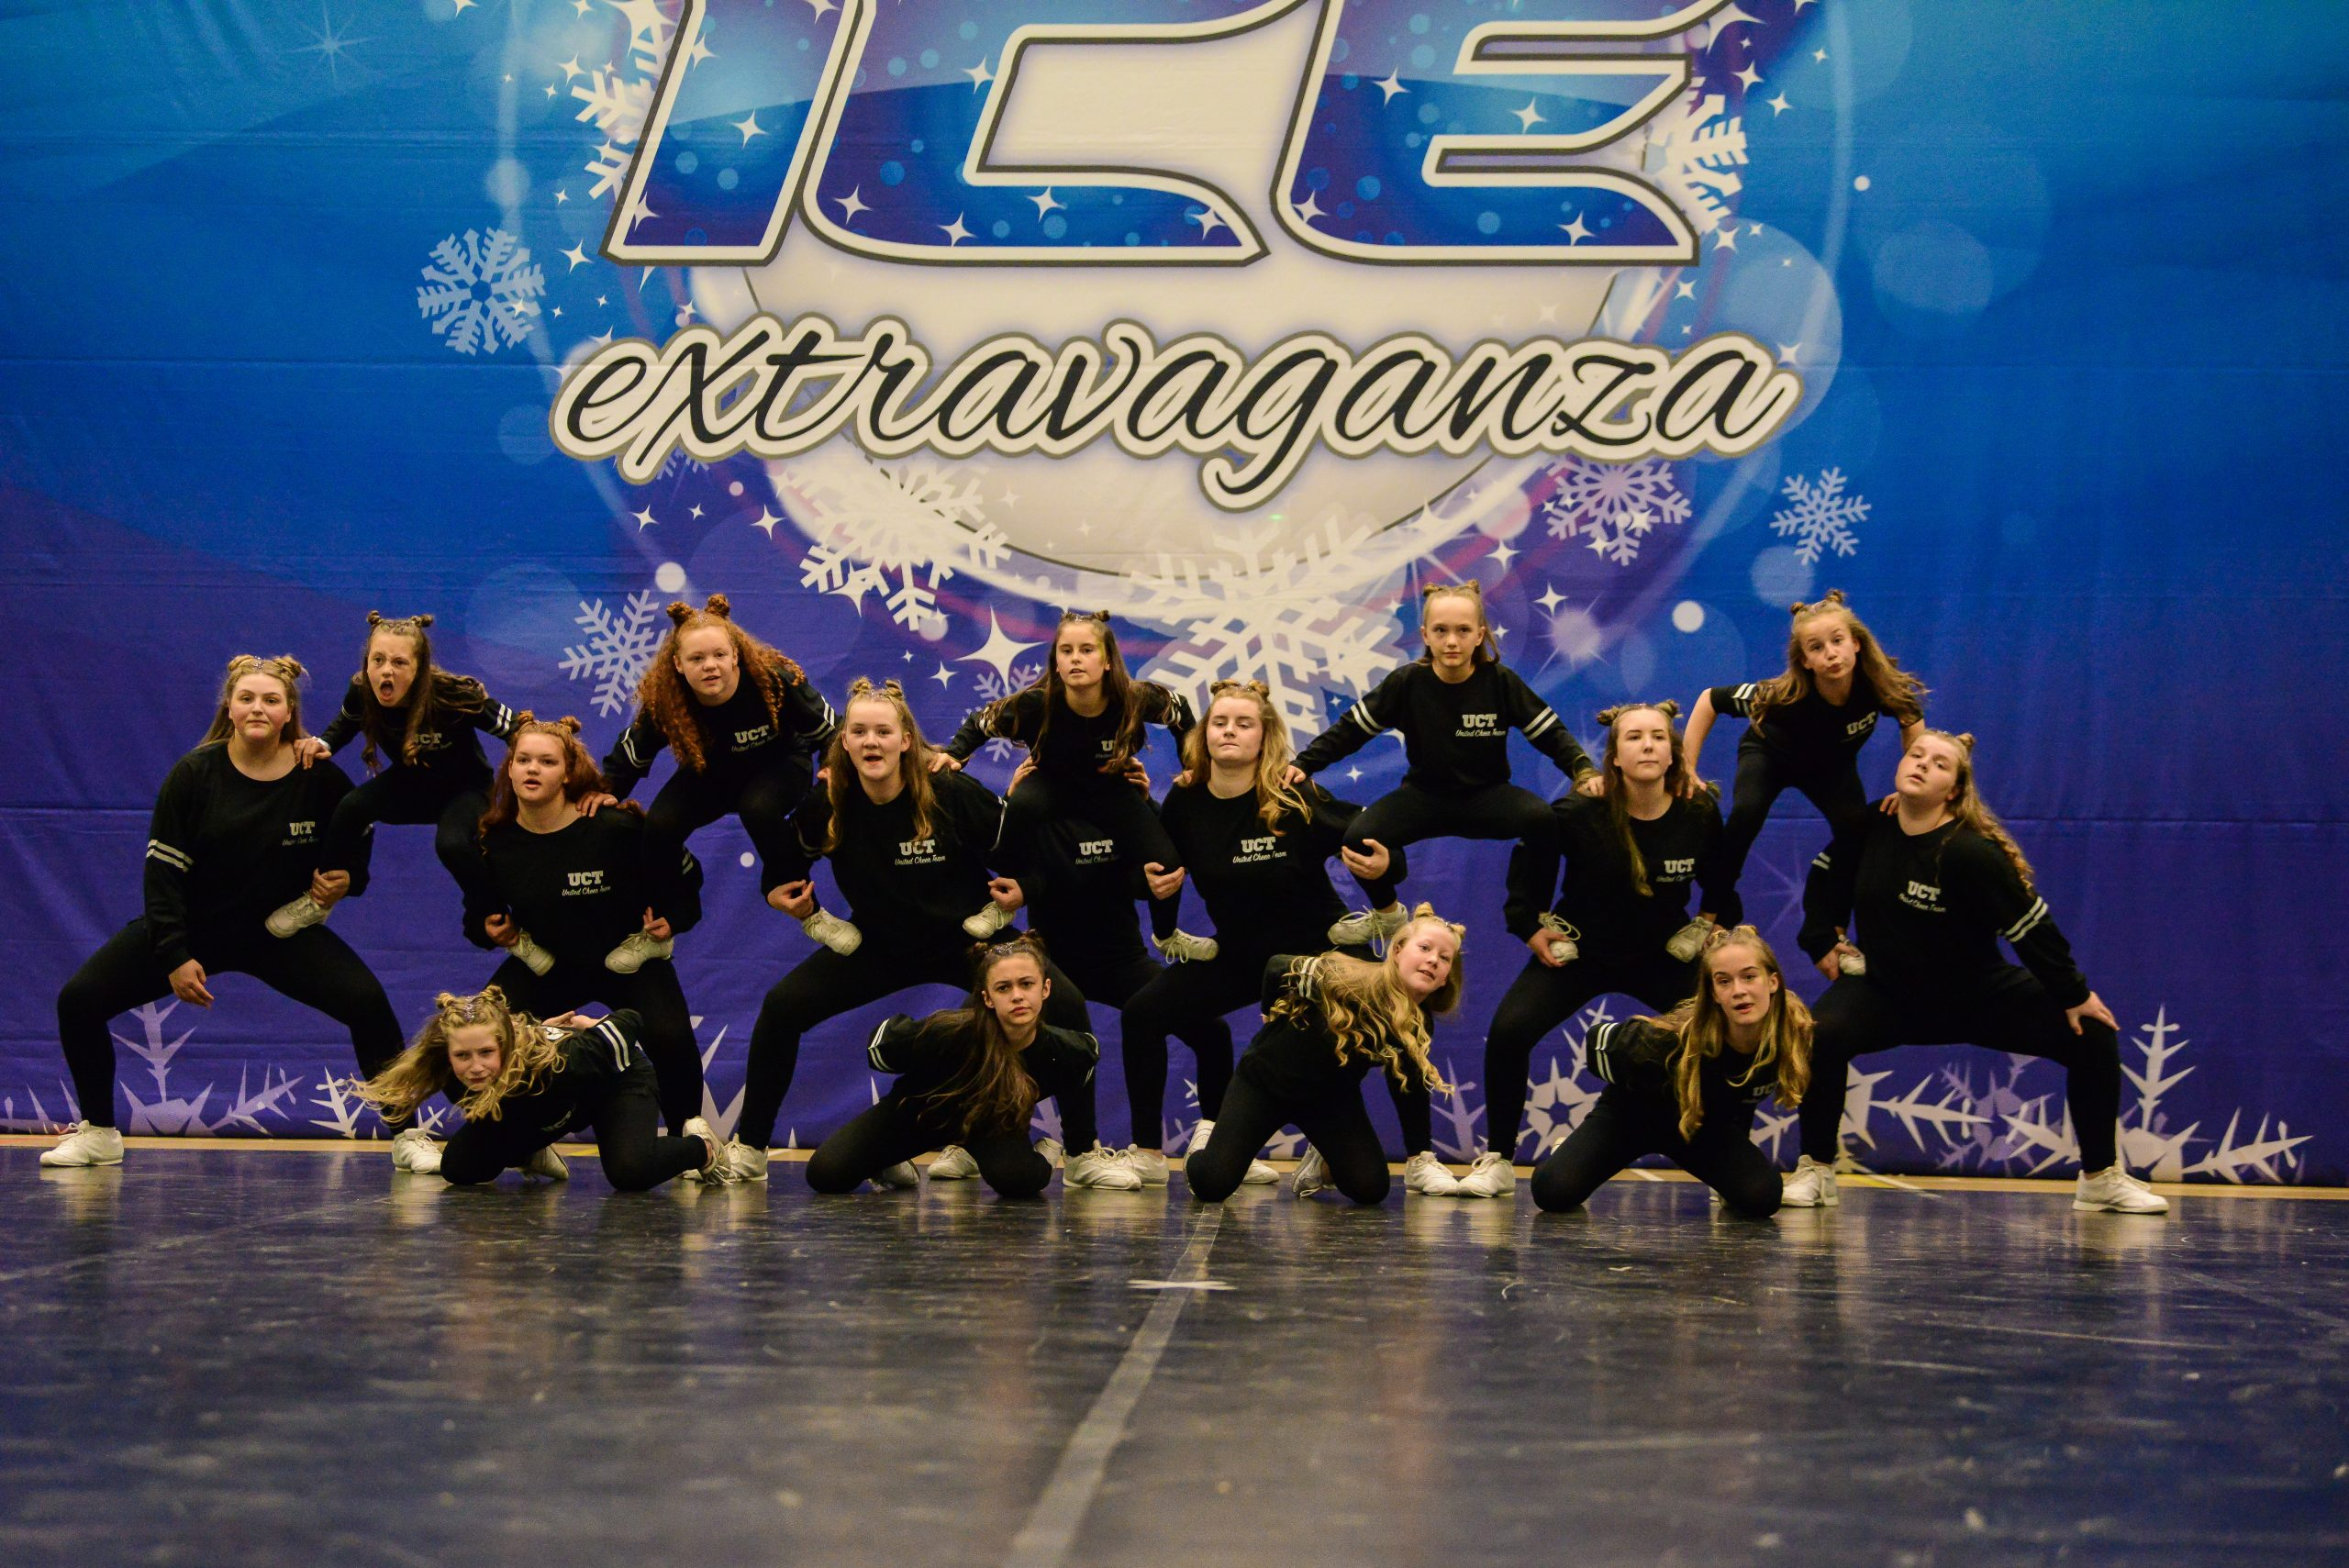 A hip hop dance team dressed in black compete on a dance floor at ICE